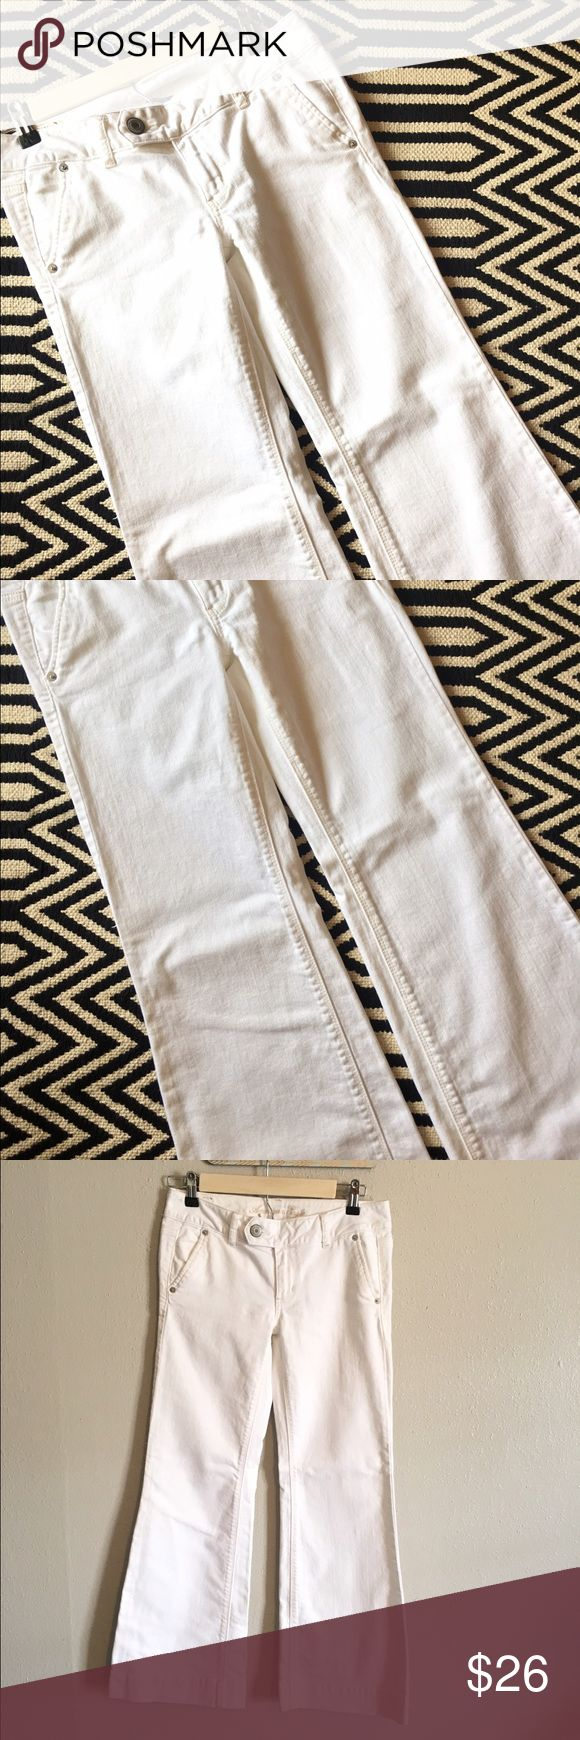 American Eagle Outfitters white denim trousers Excellent condition. American Eagle Outfitters white denim Trousers. Size 2 short. 98% cotton, 2% spandex. Measurements pictured. American Eagle Outfitters Pants Trousers